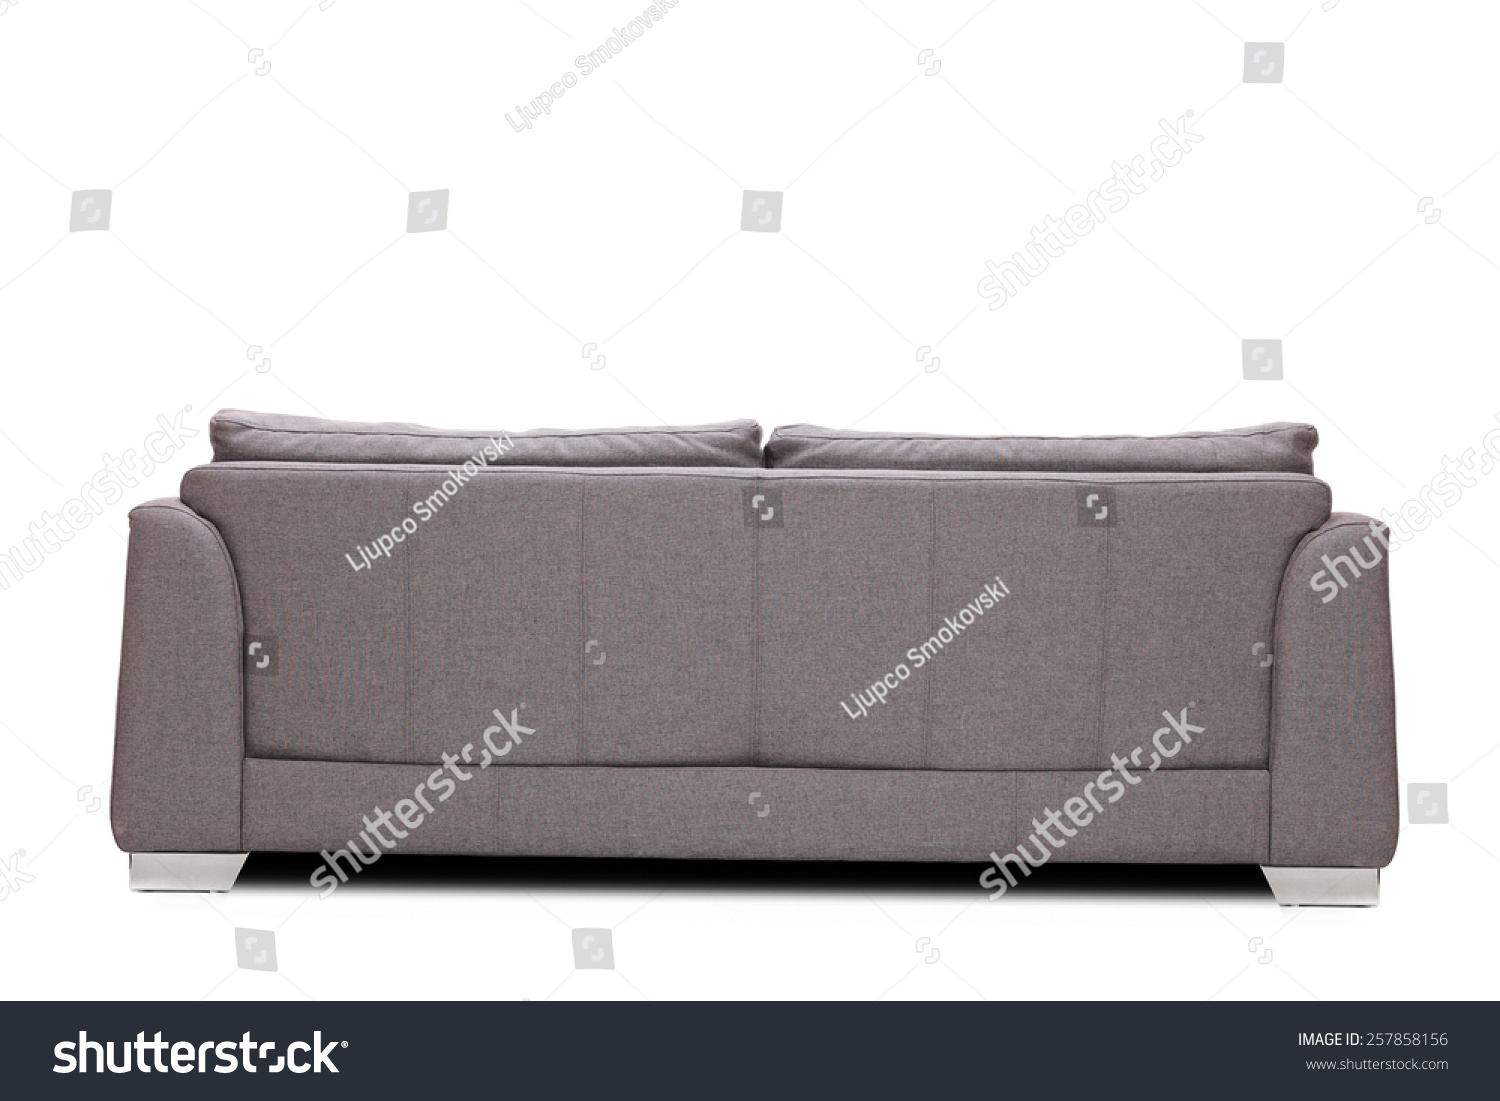 Rear view studio shot of a modern gray sofa isolated on white background